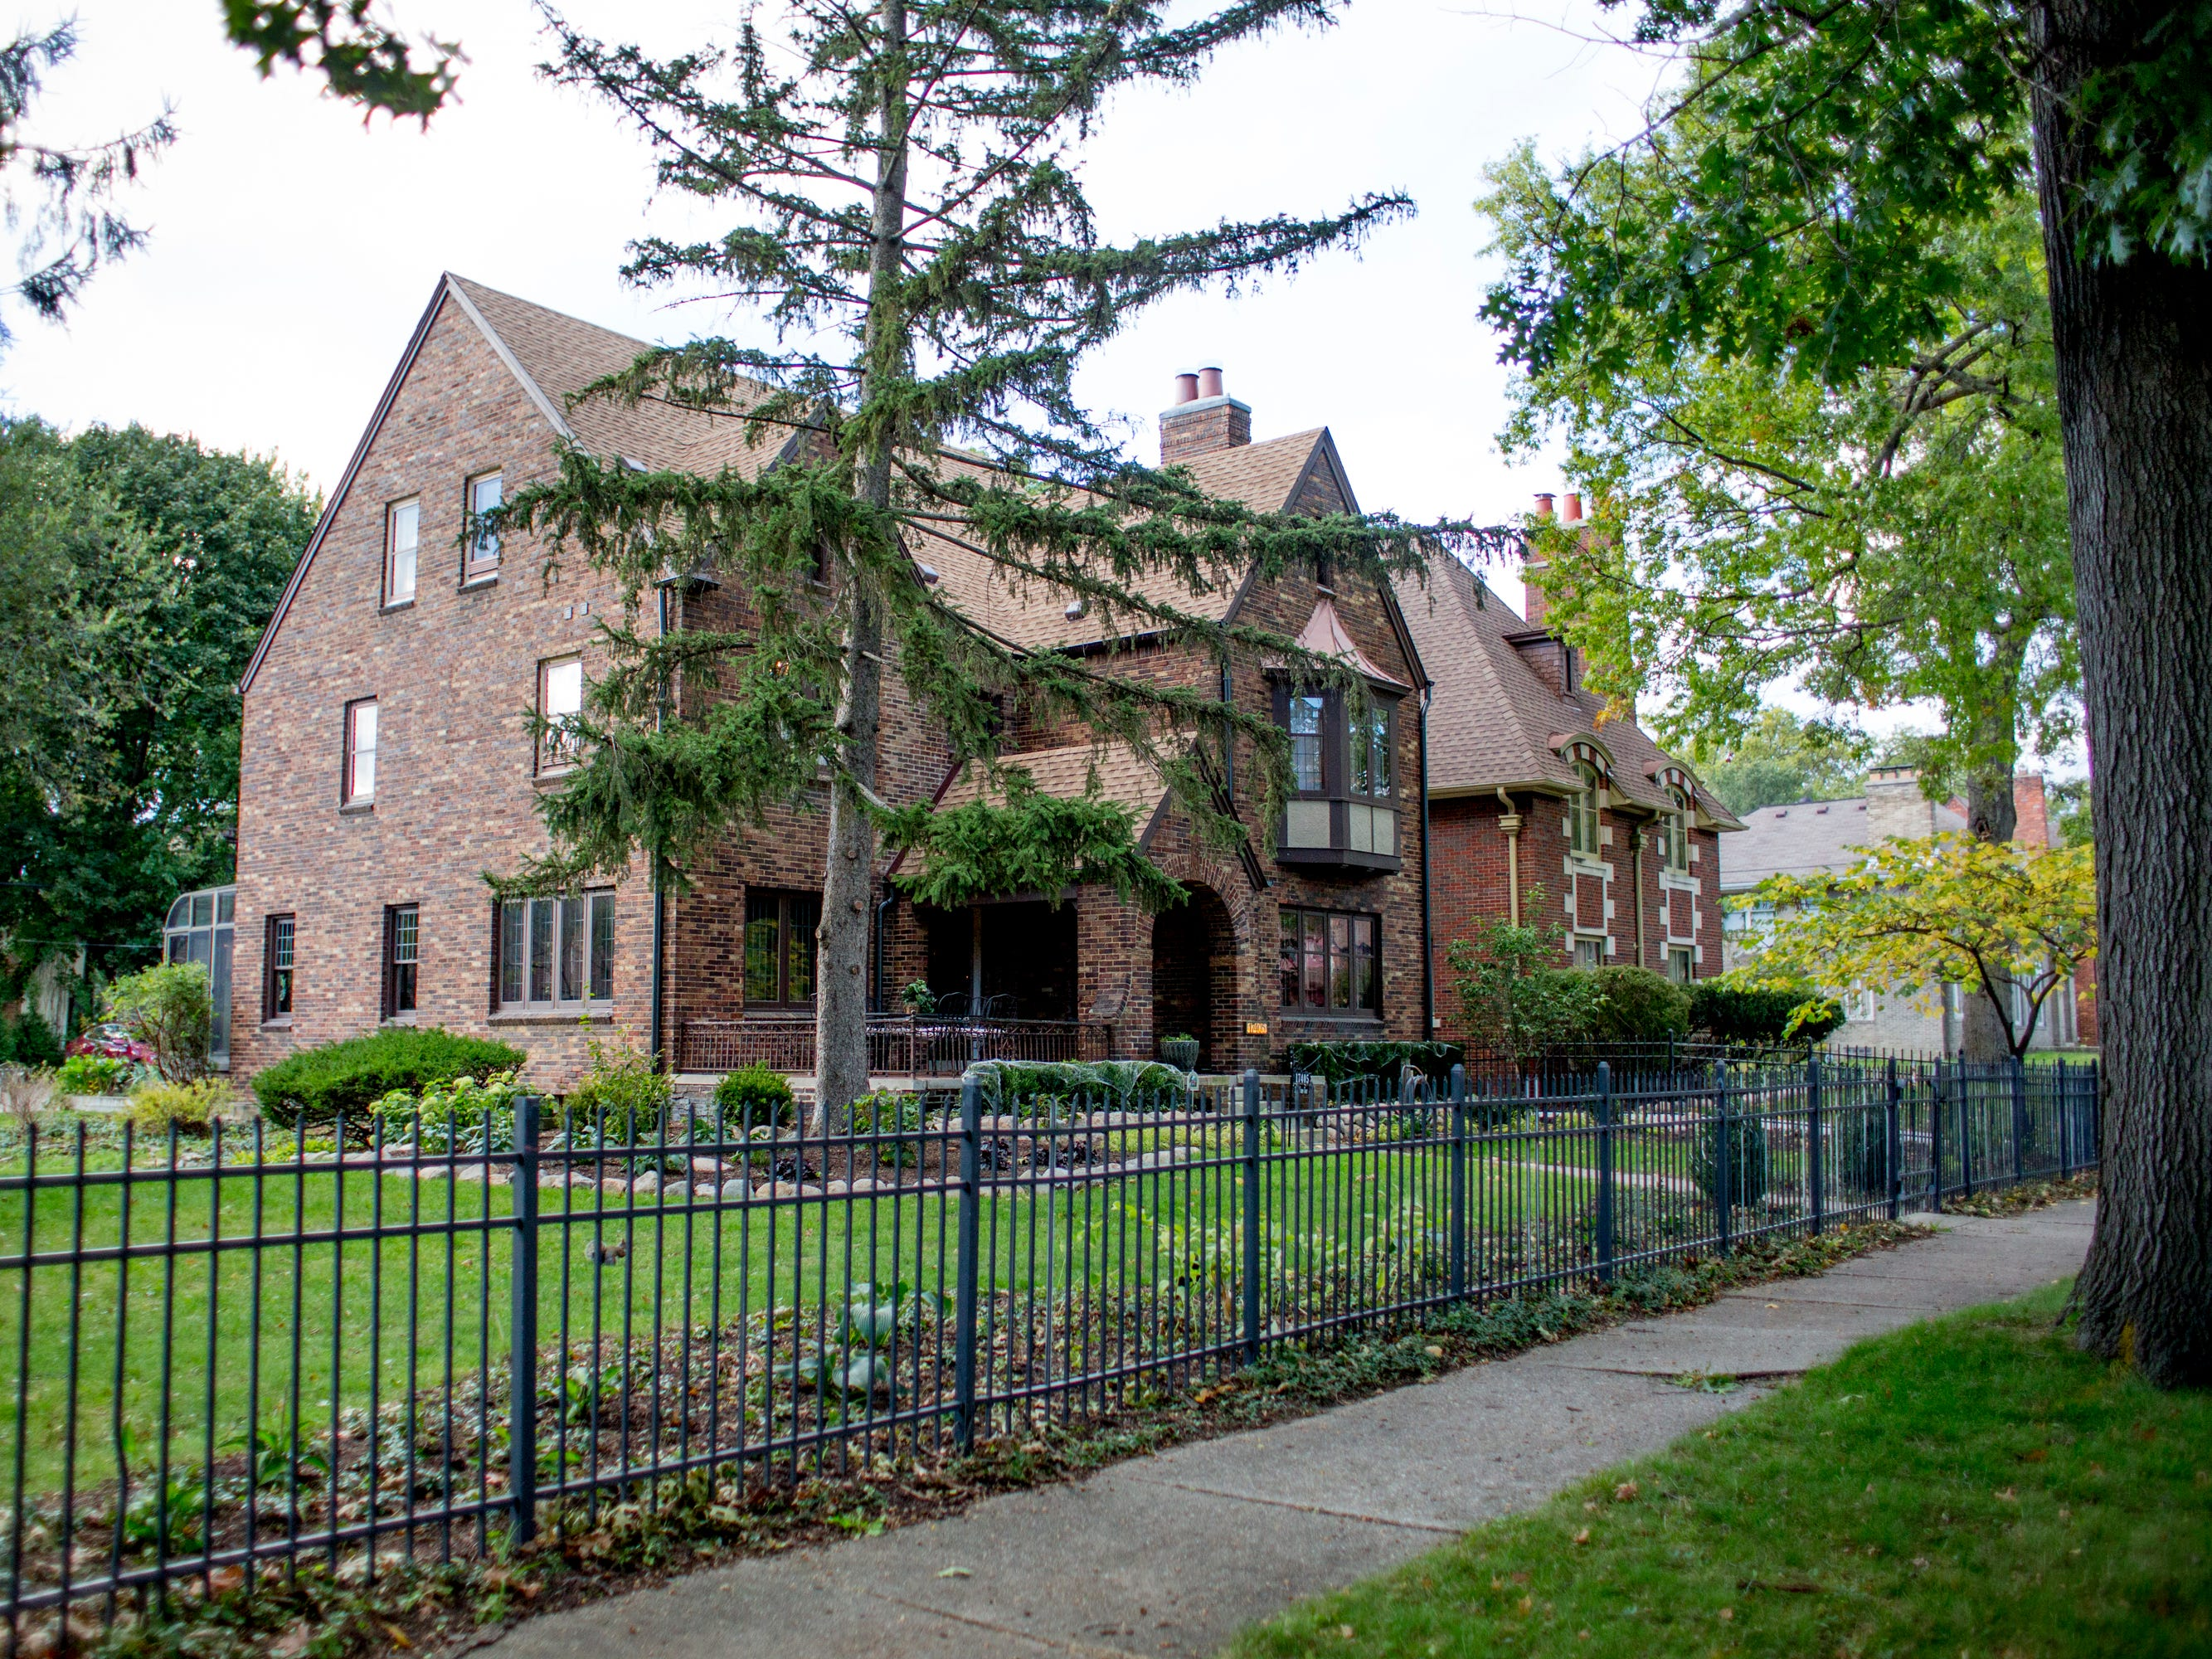 The home of Miranda Steinhauser at 17405 Wildemere Street in the University District in Detroit.